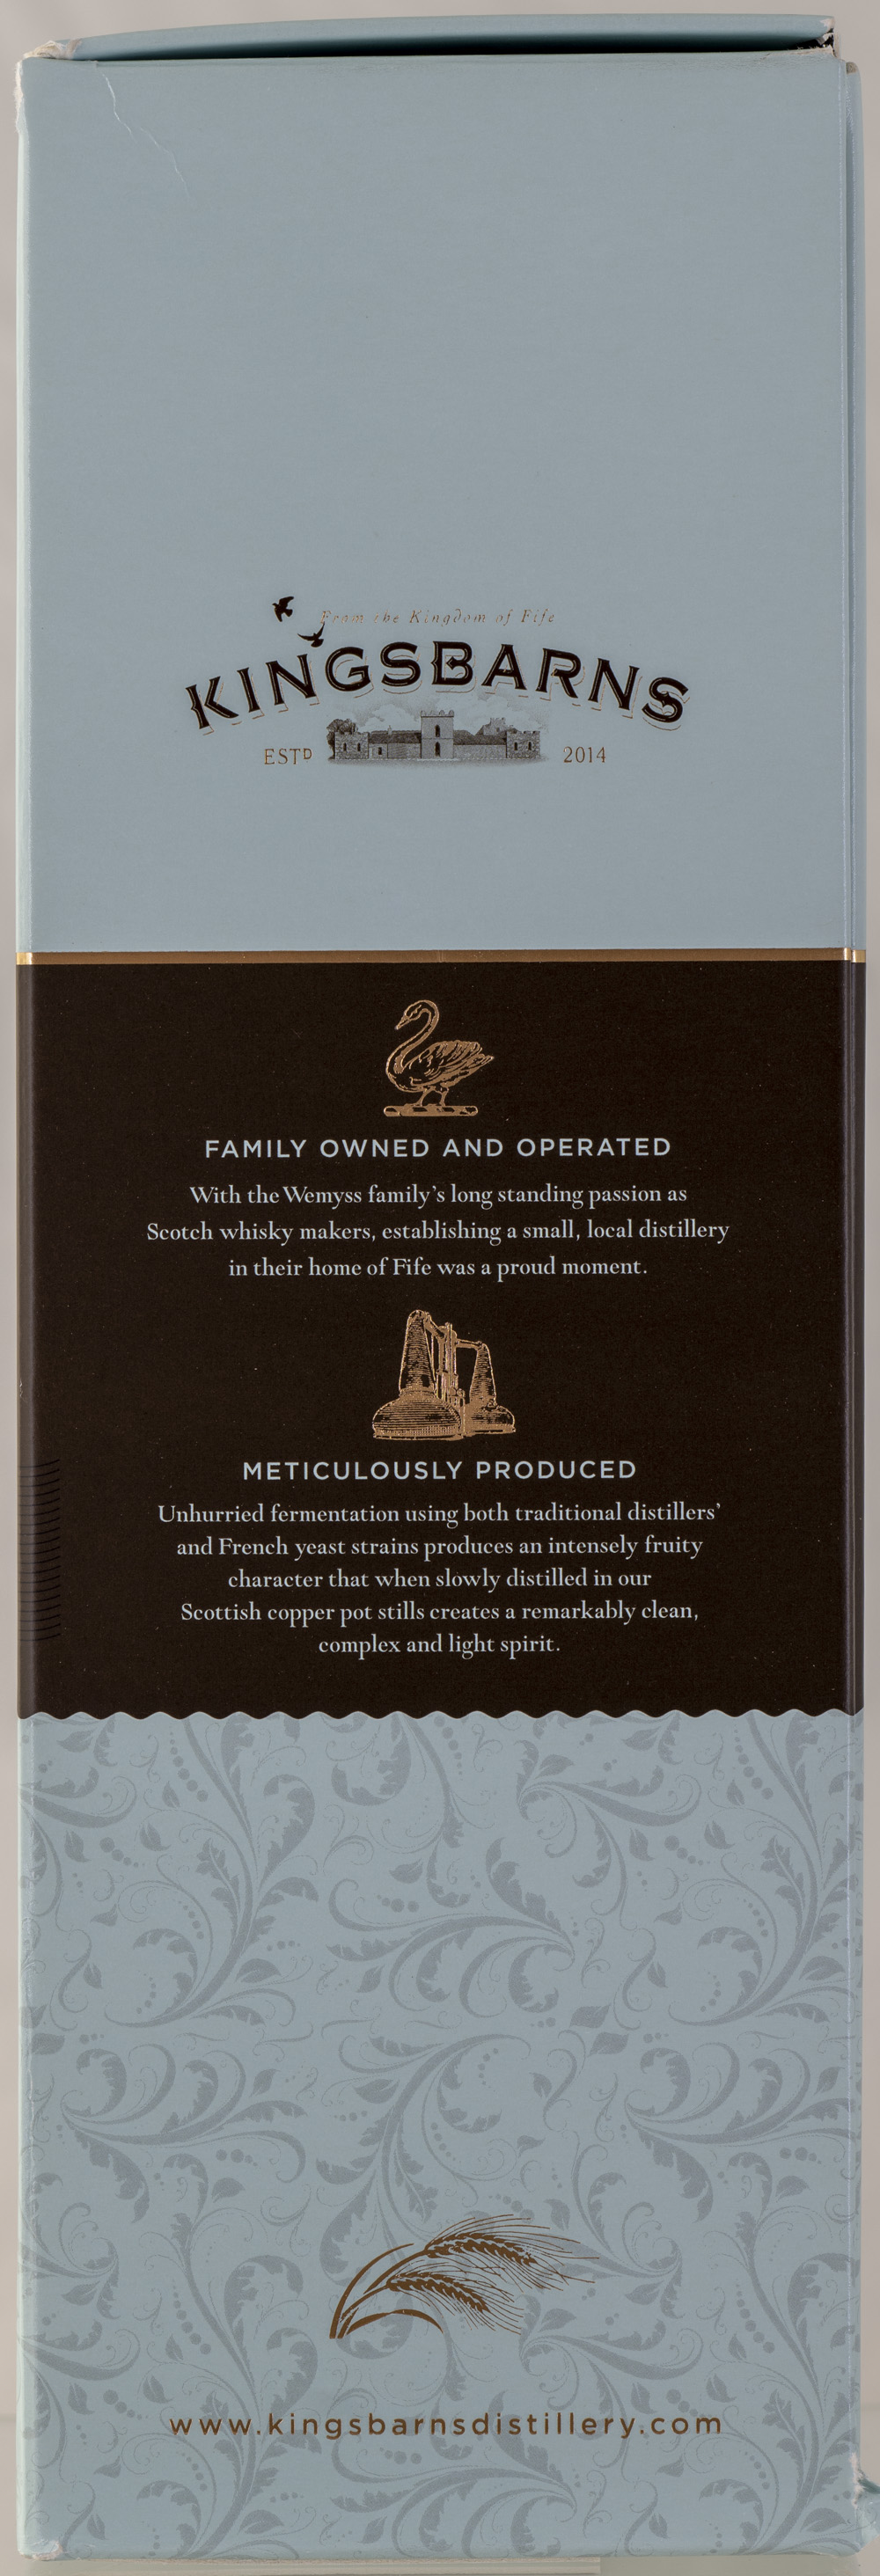 Billede: PHC_2230 - Kingsbarns Dream to Dram - box back.jpg